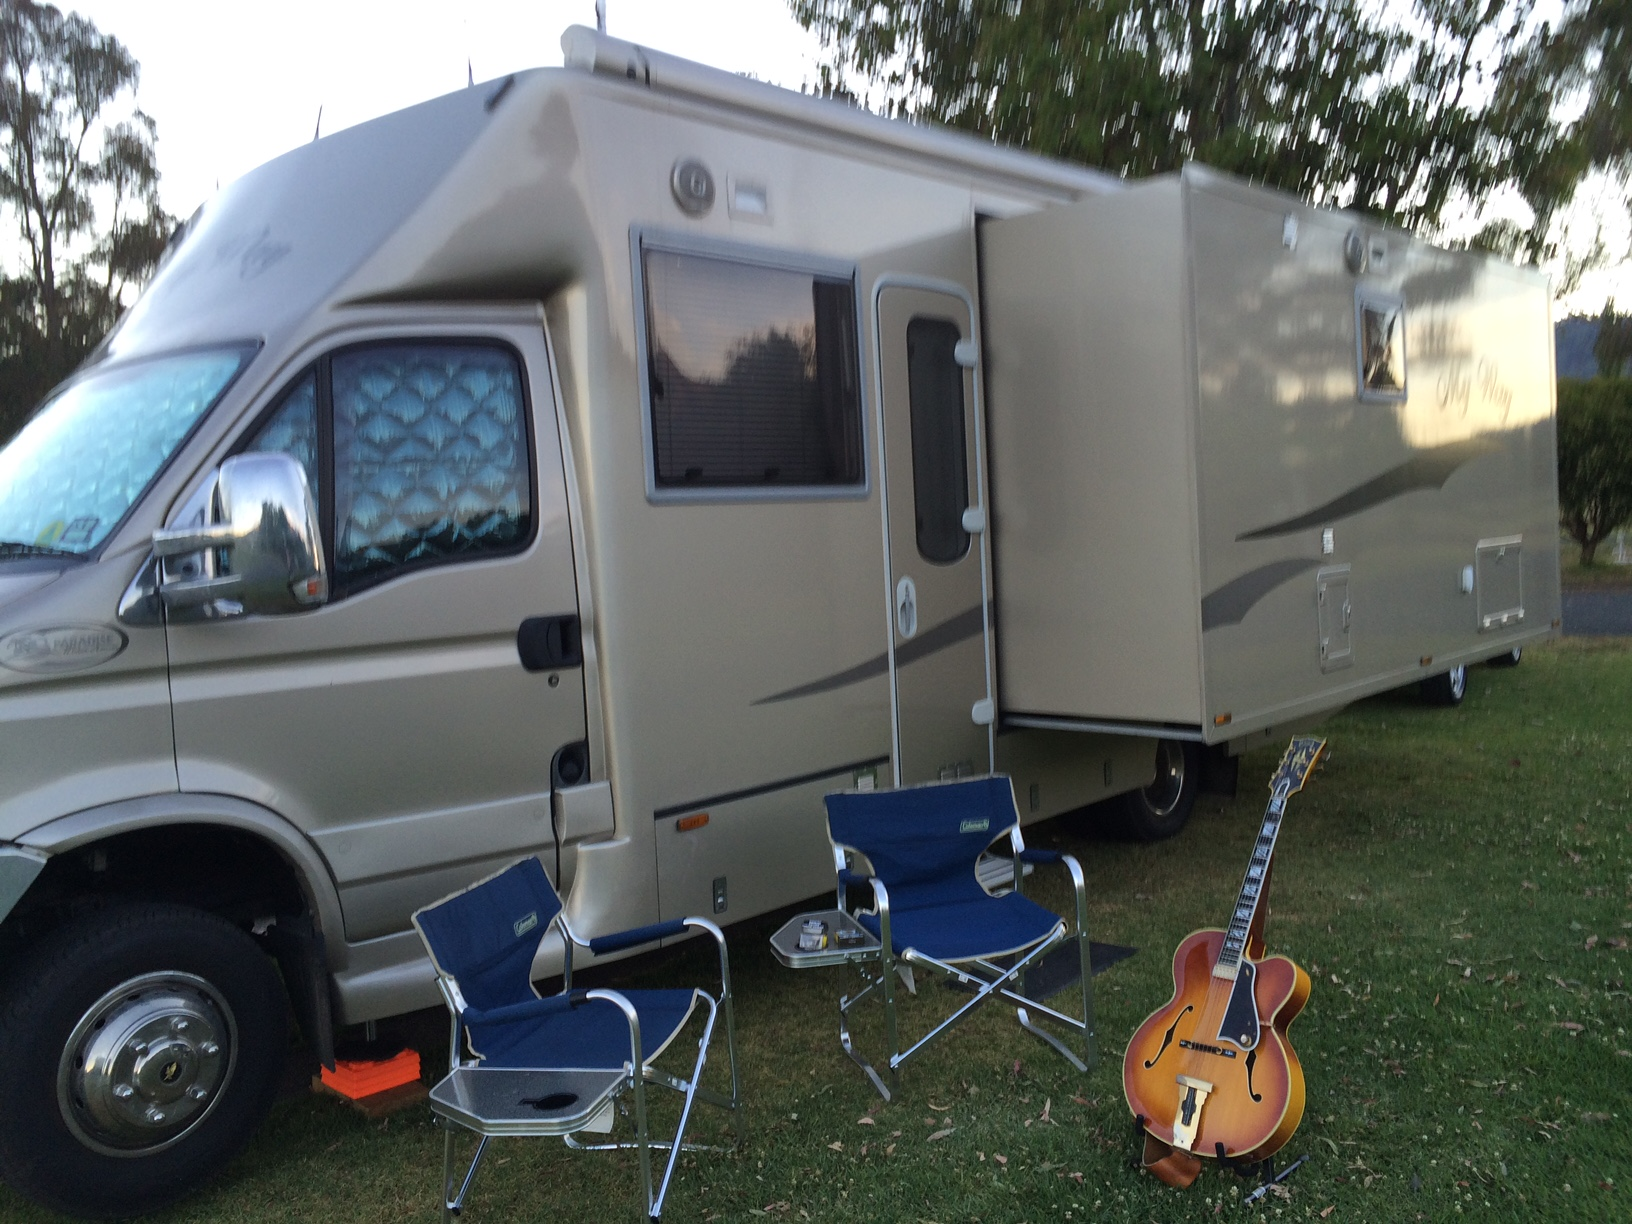 Which of these guitars would be best for a motorhome?-motor-home-jpg